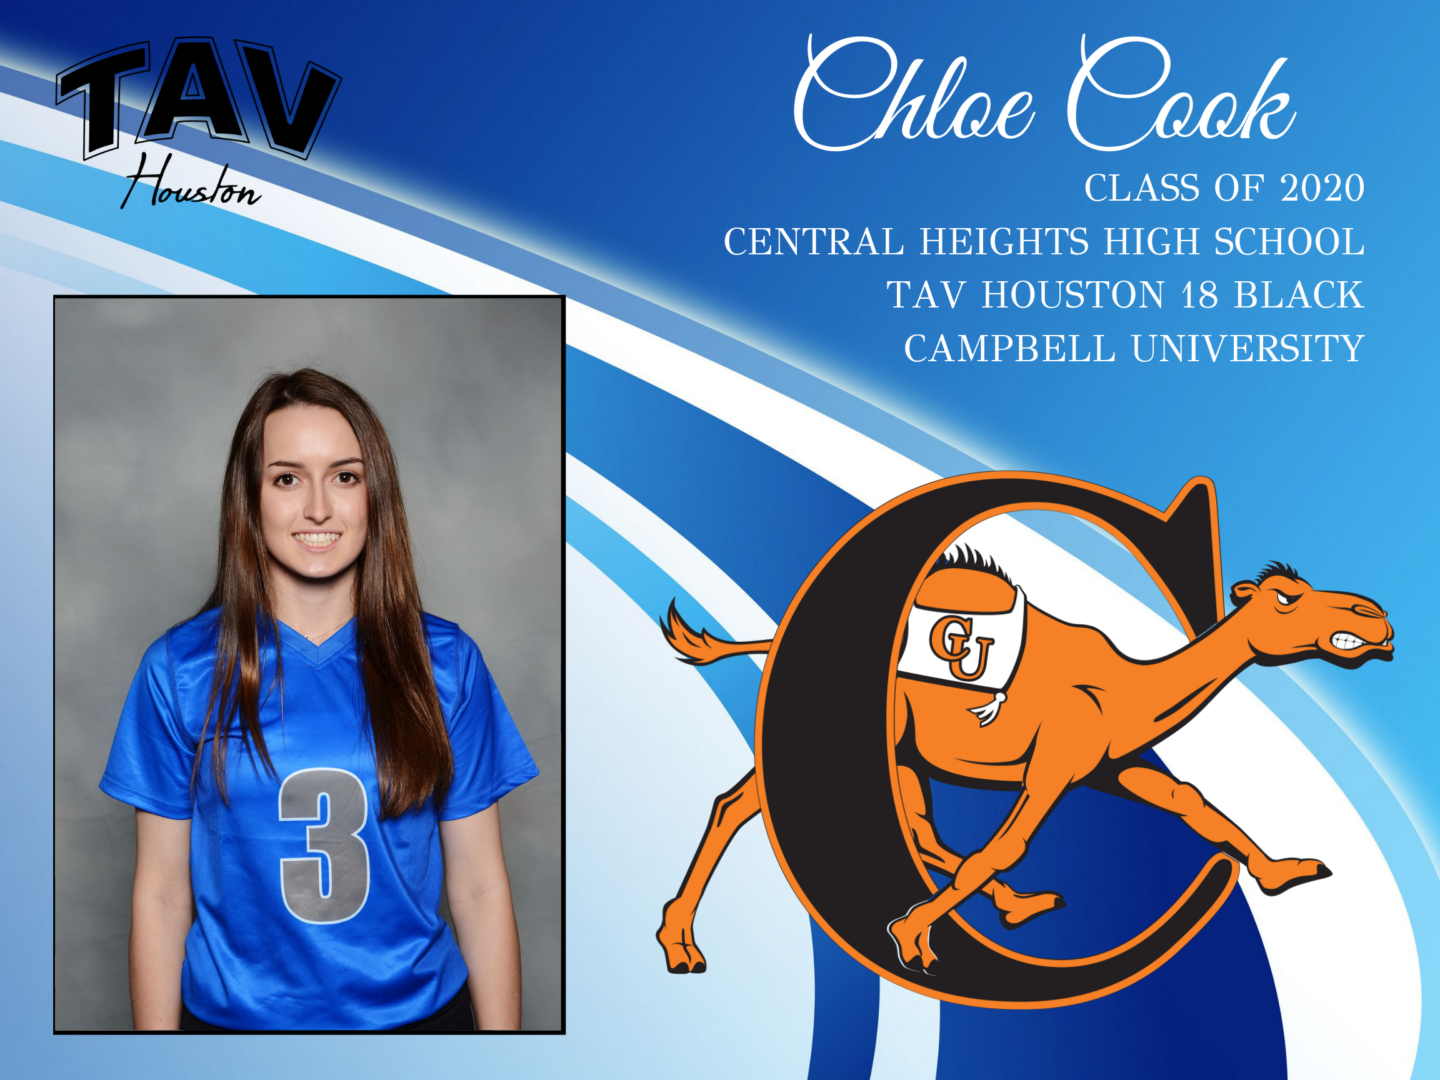 Chloe Cook - Campbell Univ.